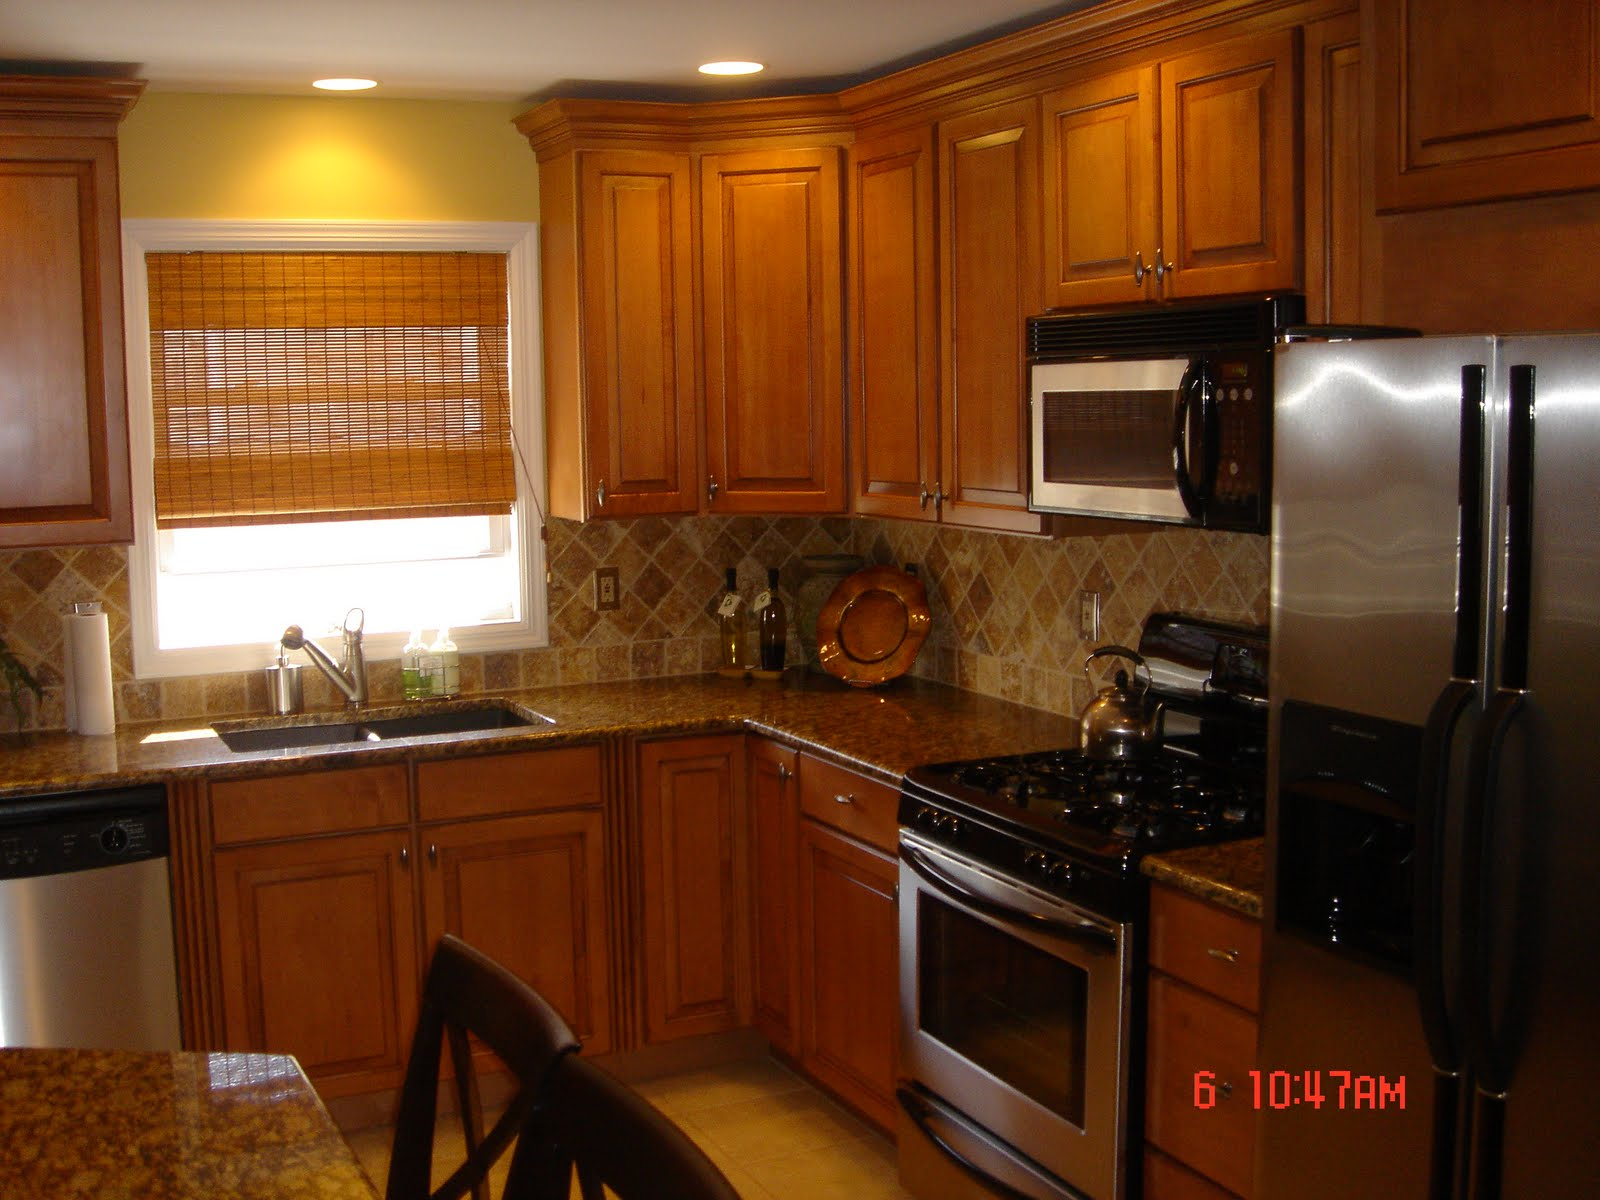 Kitchen color ideas with oak cabinets afreakatheart for Paint in kitchen ideas